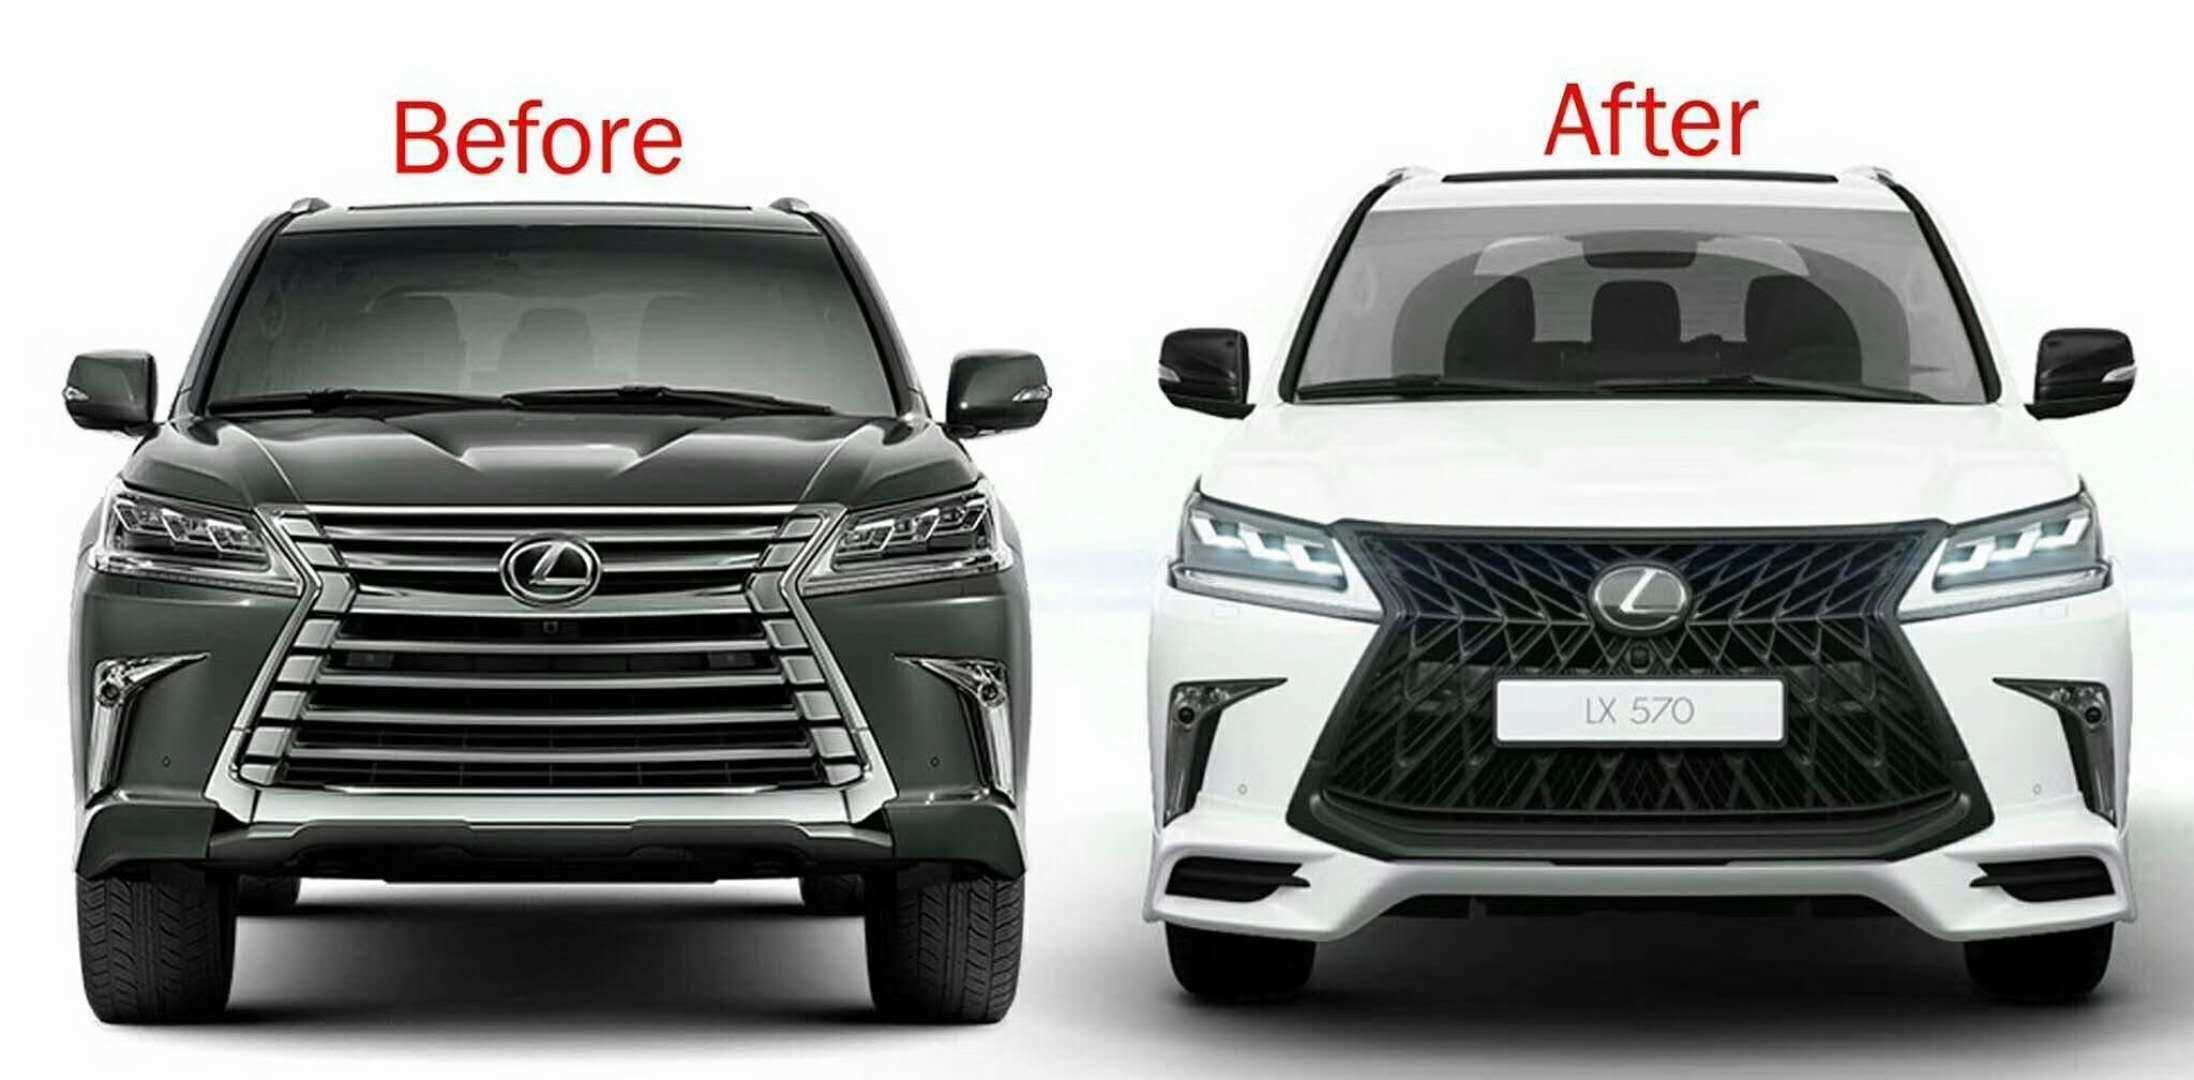 58 All New 2020 Lexus LX 570 Overview